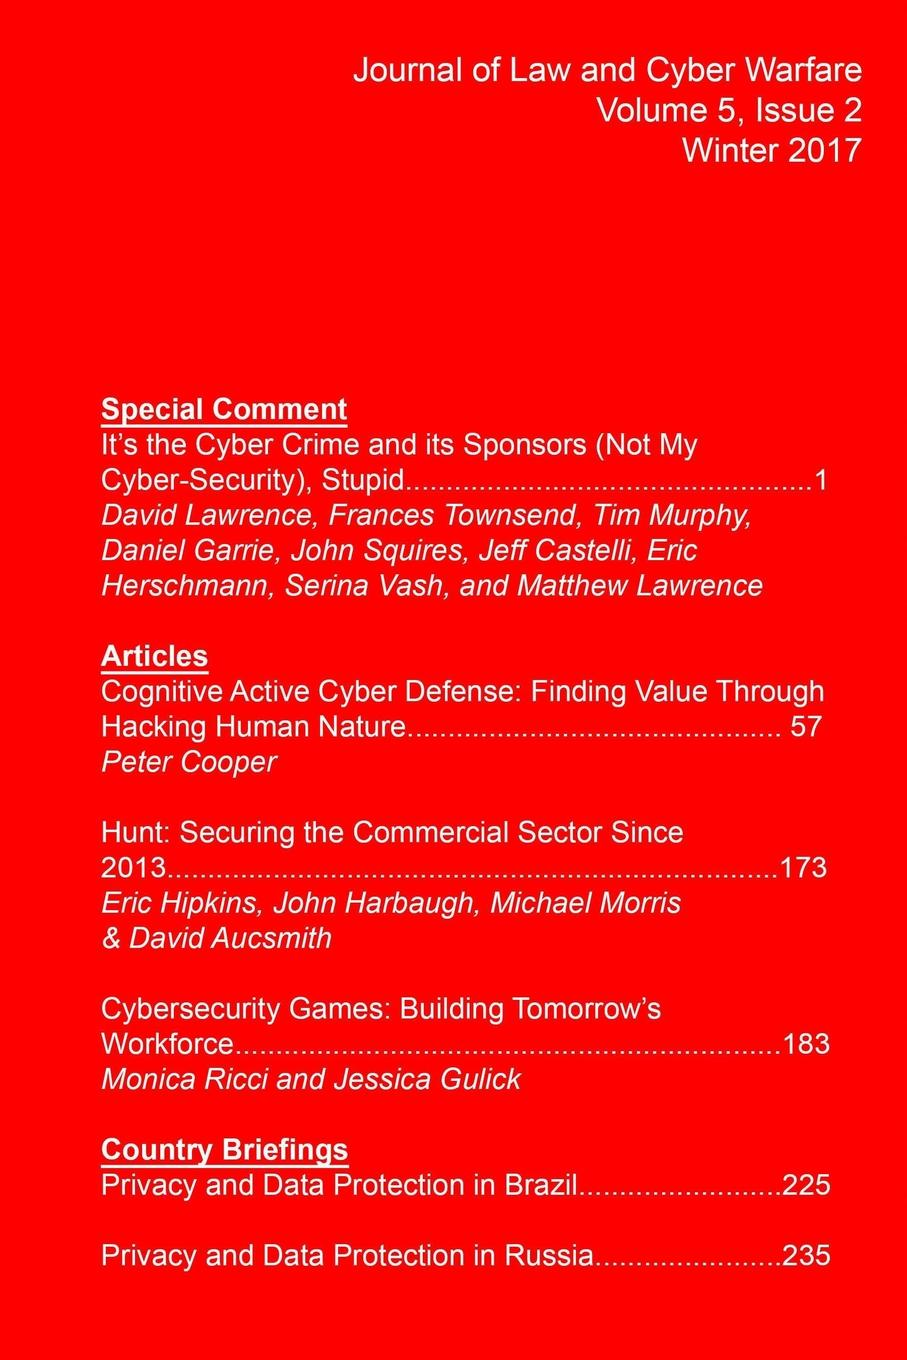 Journal of Law and Cyber Warfare Journal of Law and Cyber Warfare, Volume 5, Issue 2 modern warfare ноутбуки